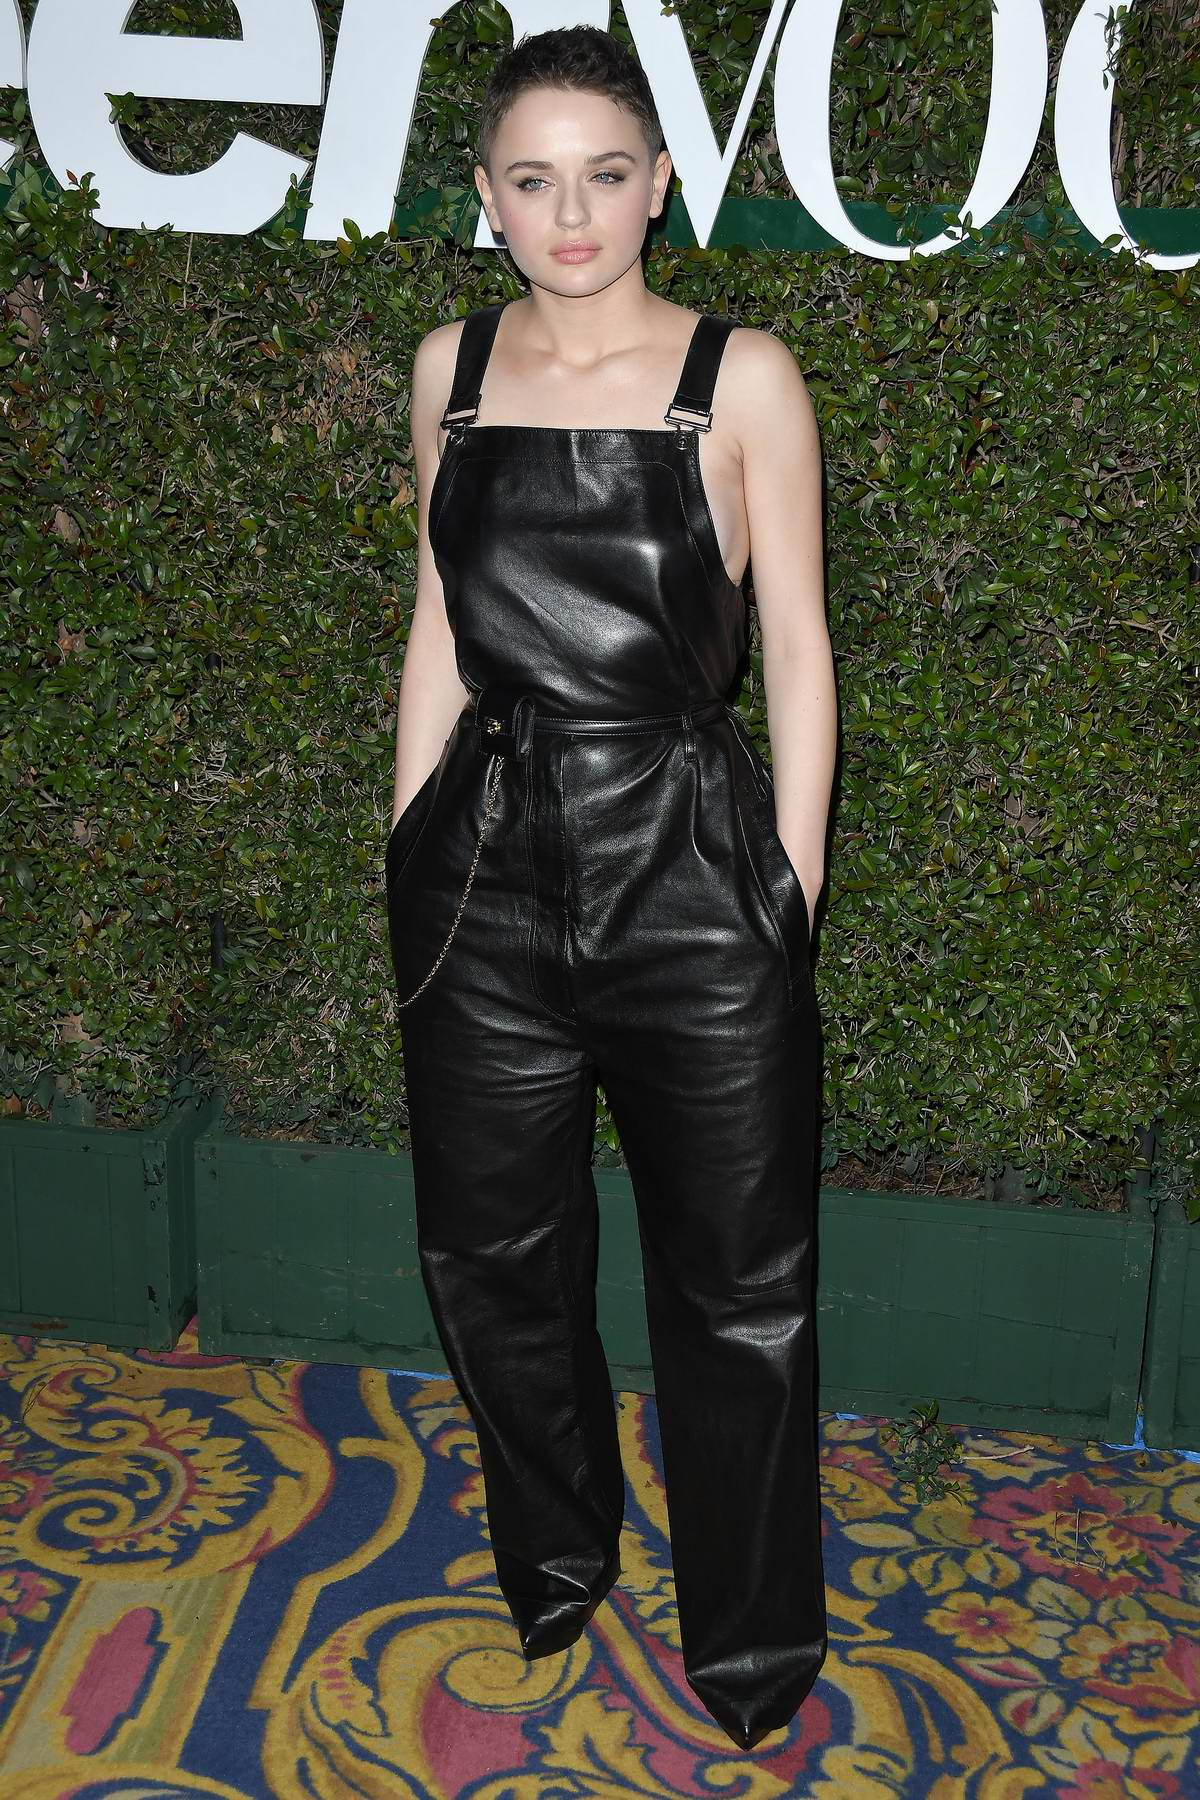 Joey King attends the Teen Vogue's 2019 Young Hollywood Party held at the LA Theatre in Los Angeles